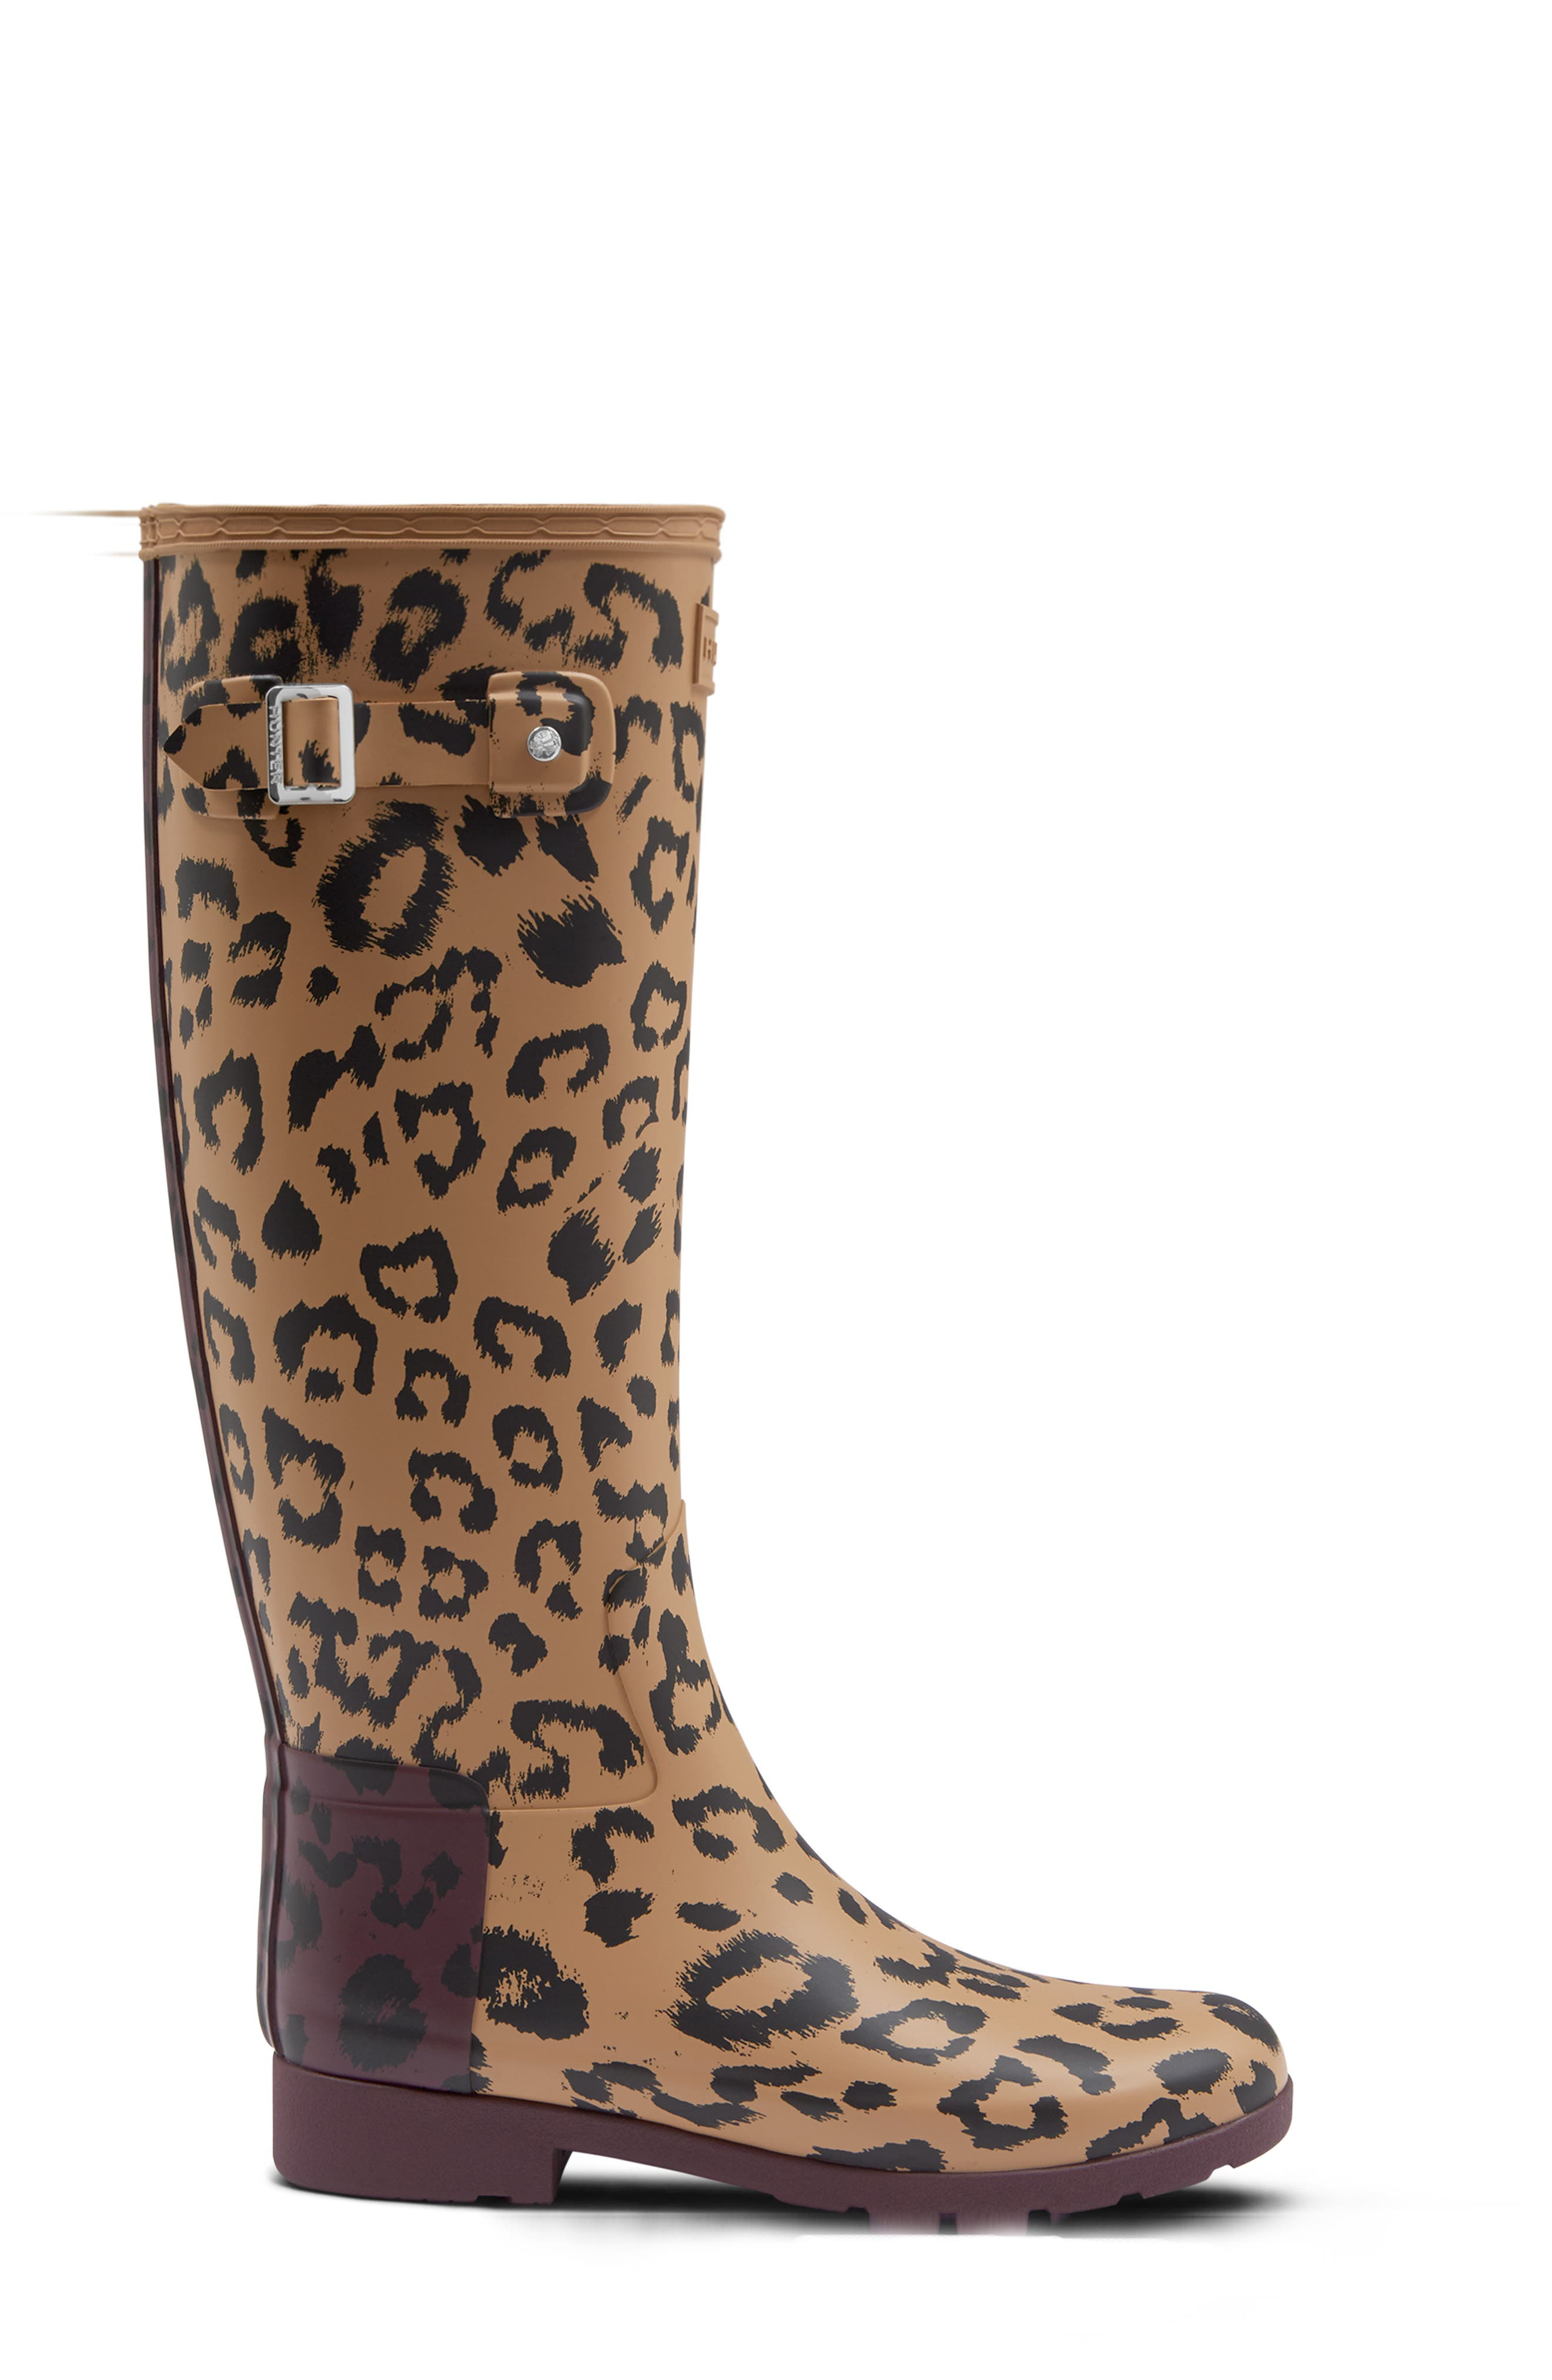 Original Leopard Print Refined Tall Waterproof Rain Boot,                             Alternate thumbnail 3, color,                             TAWNY/ OXBLOOD RUBBER